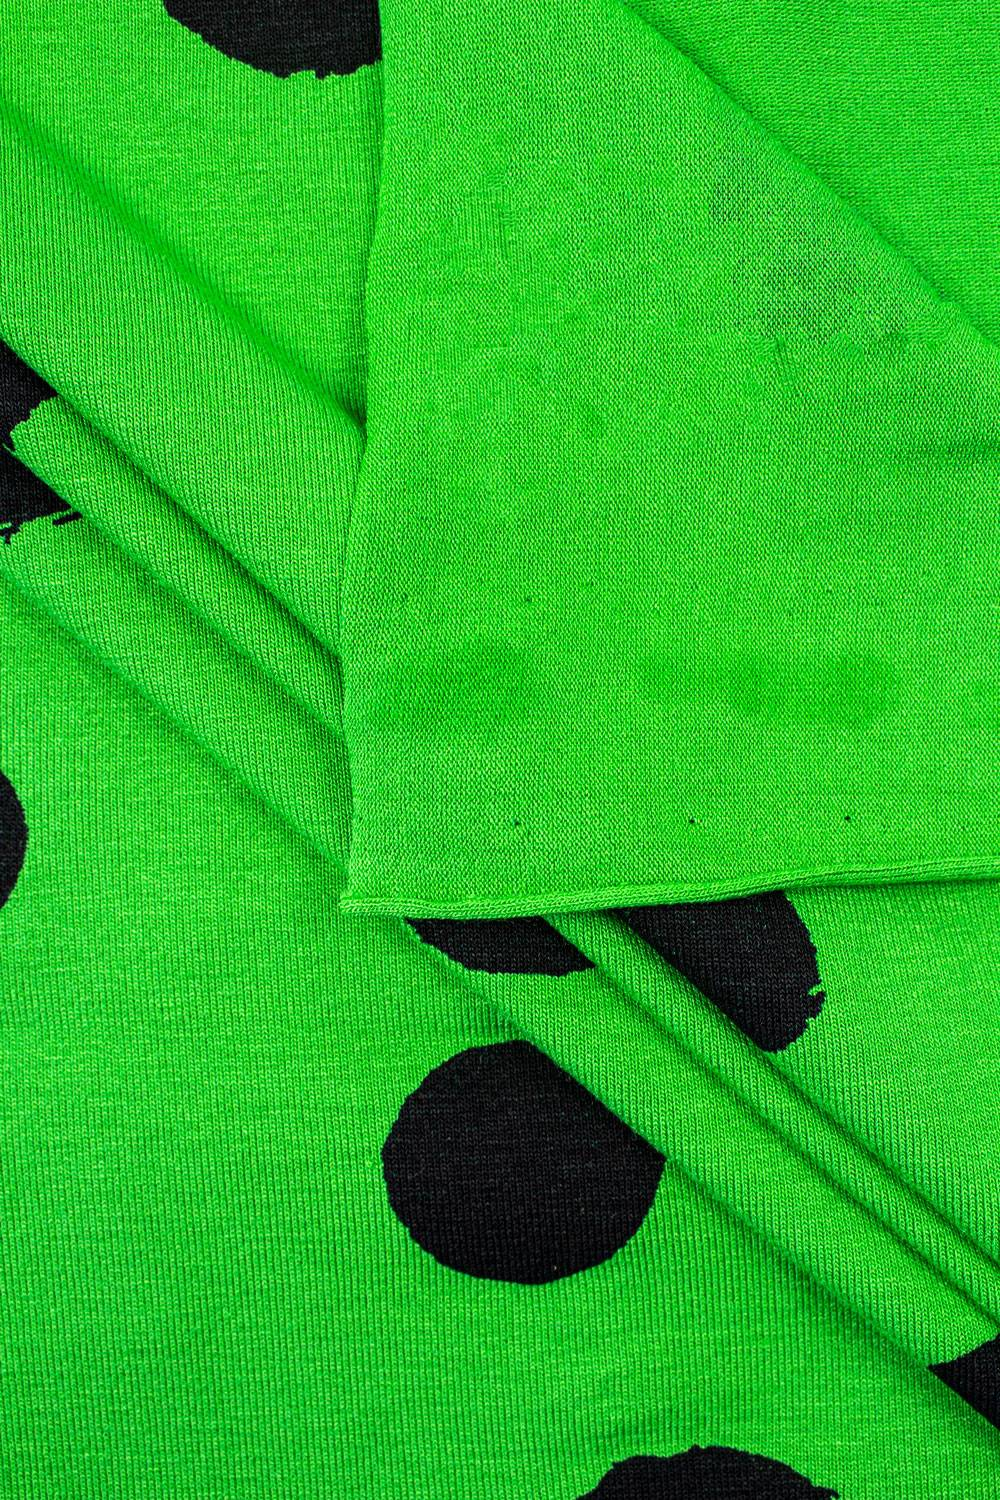 Knit - Viscose Jersey - Green With Big Black Ink Spots - 160 cm - 200 g/m2